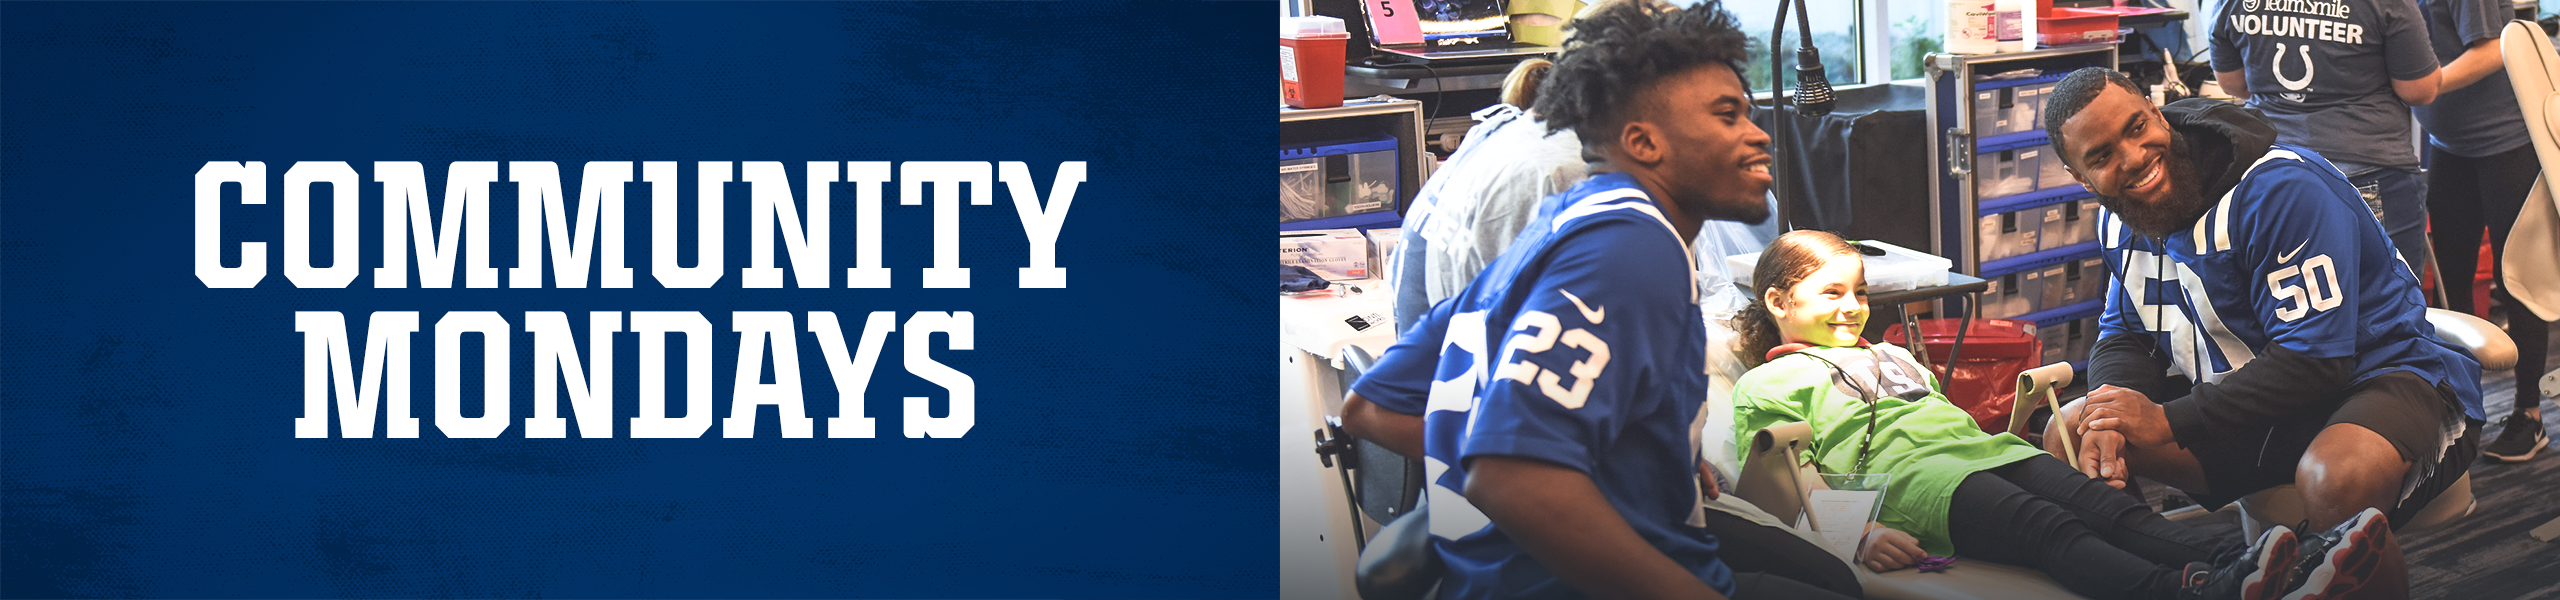 Indianapolis Colts Community Mondays